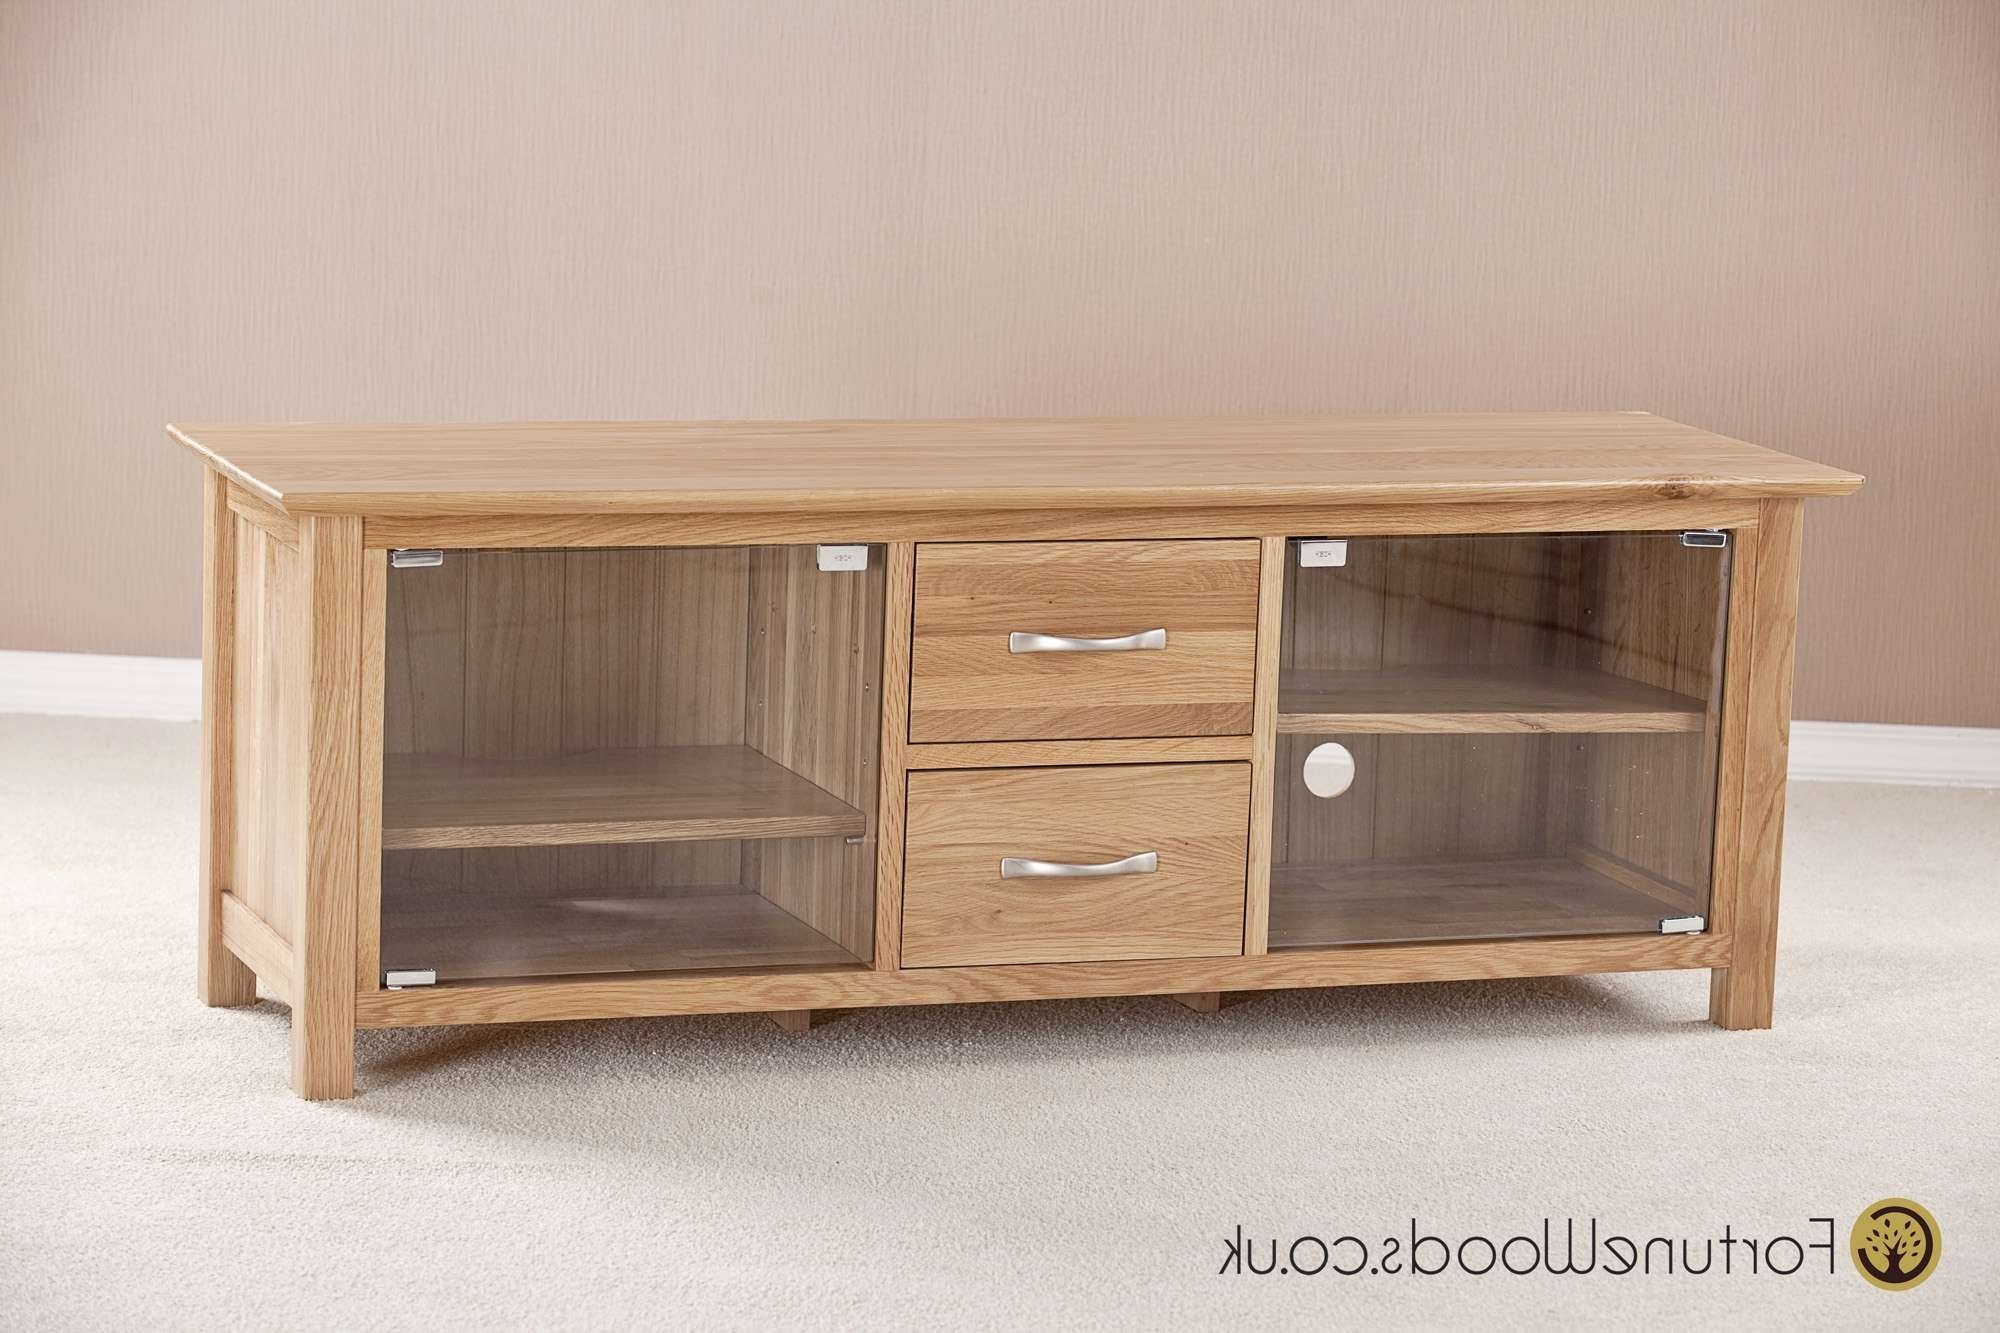 Large Oak Tv Unit With Glass Doors Intended For Sideboards With Glass Doors And Drawers (View 7 of 20)